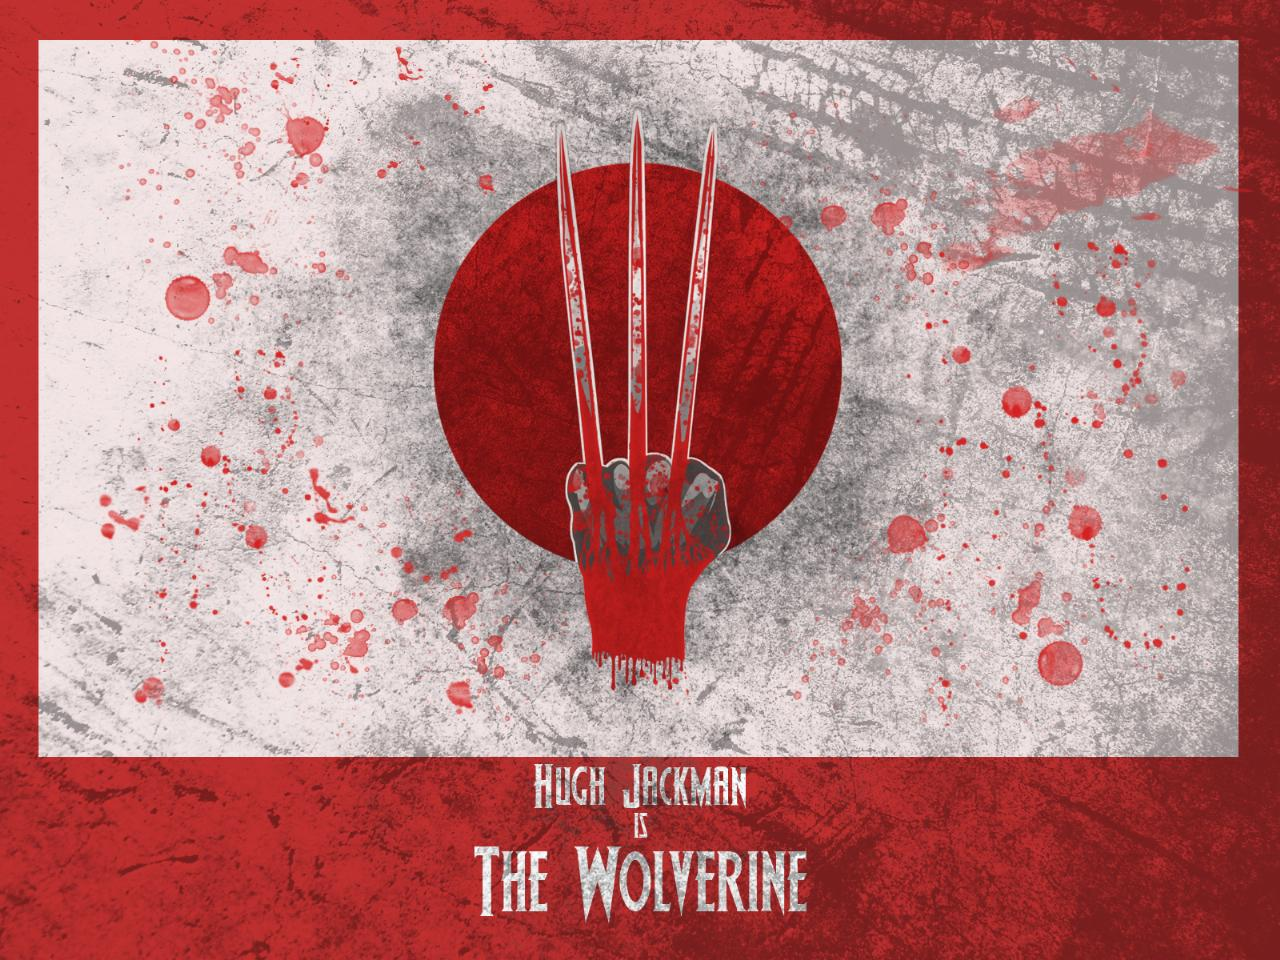 Minamilist wolverine claws and the Japanese flag